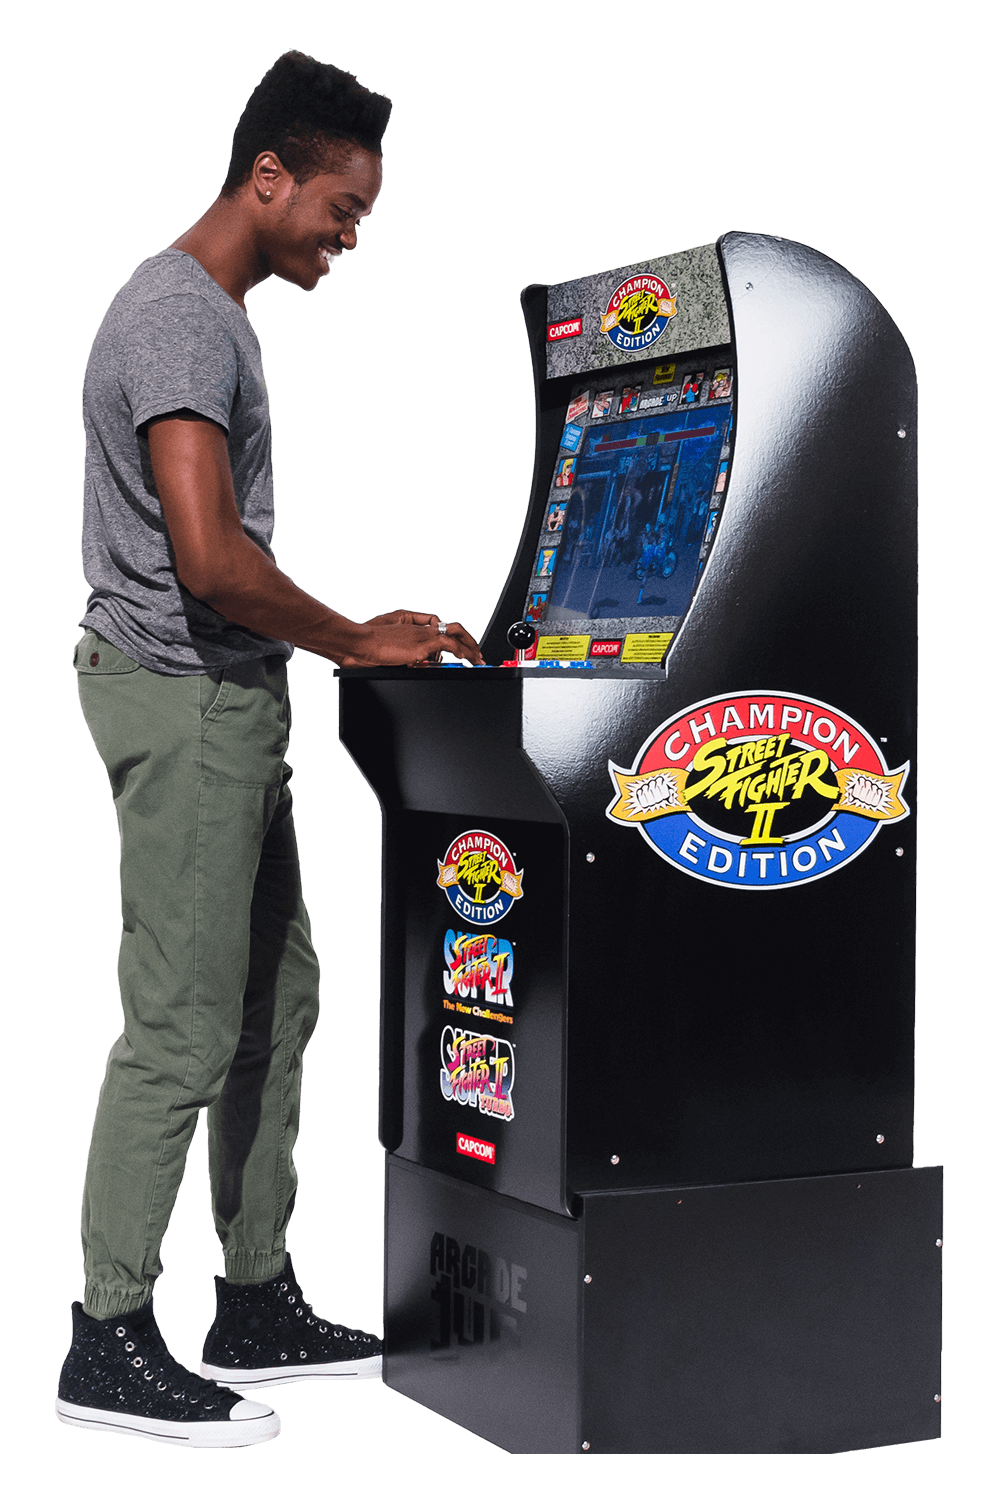 Street Fighter Arcade Cabinet Arcade1up